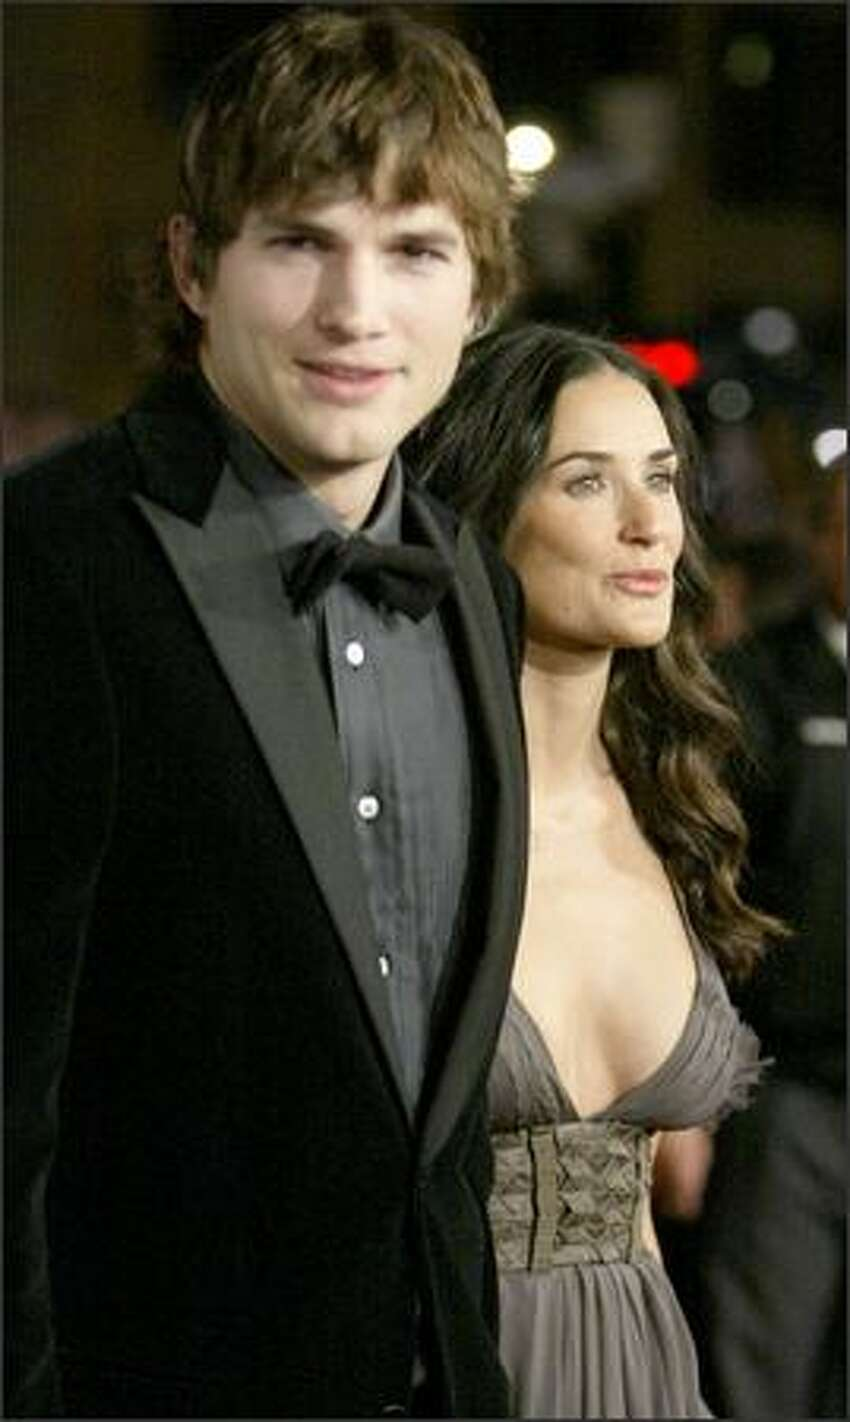 Ashton Kutcher, left, and Demi Moore, right, arrive for the premiere of the movie